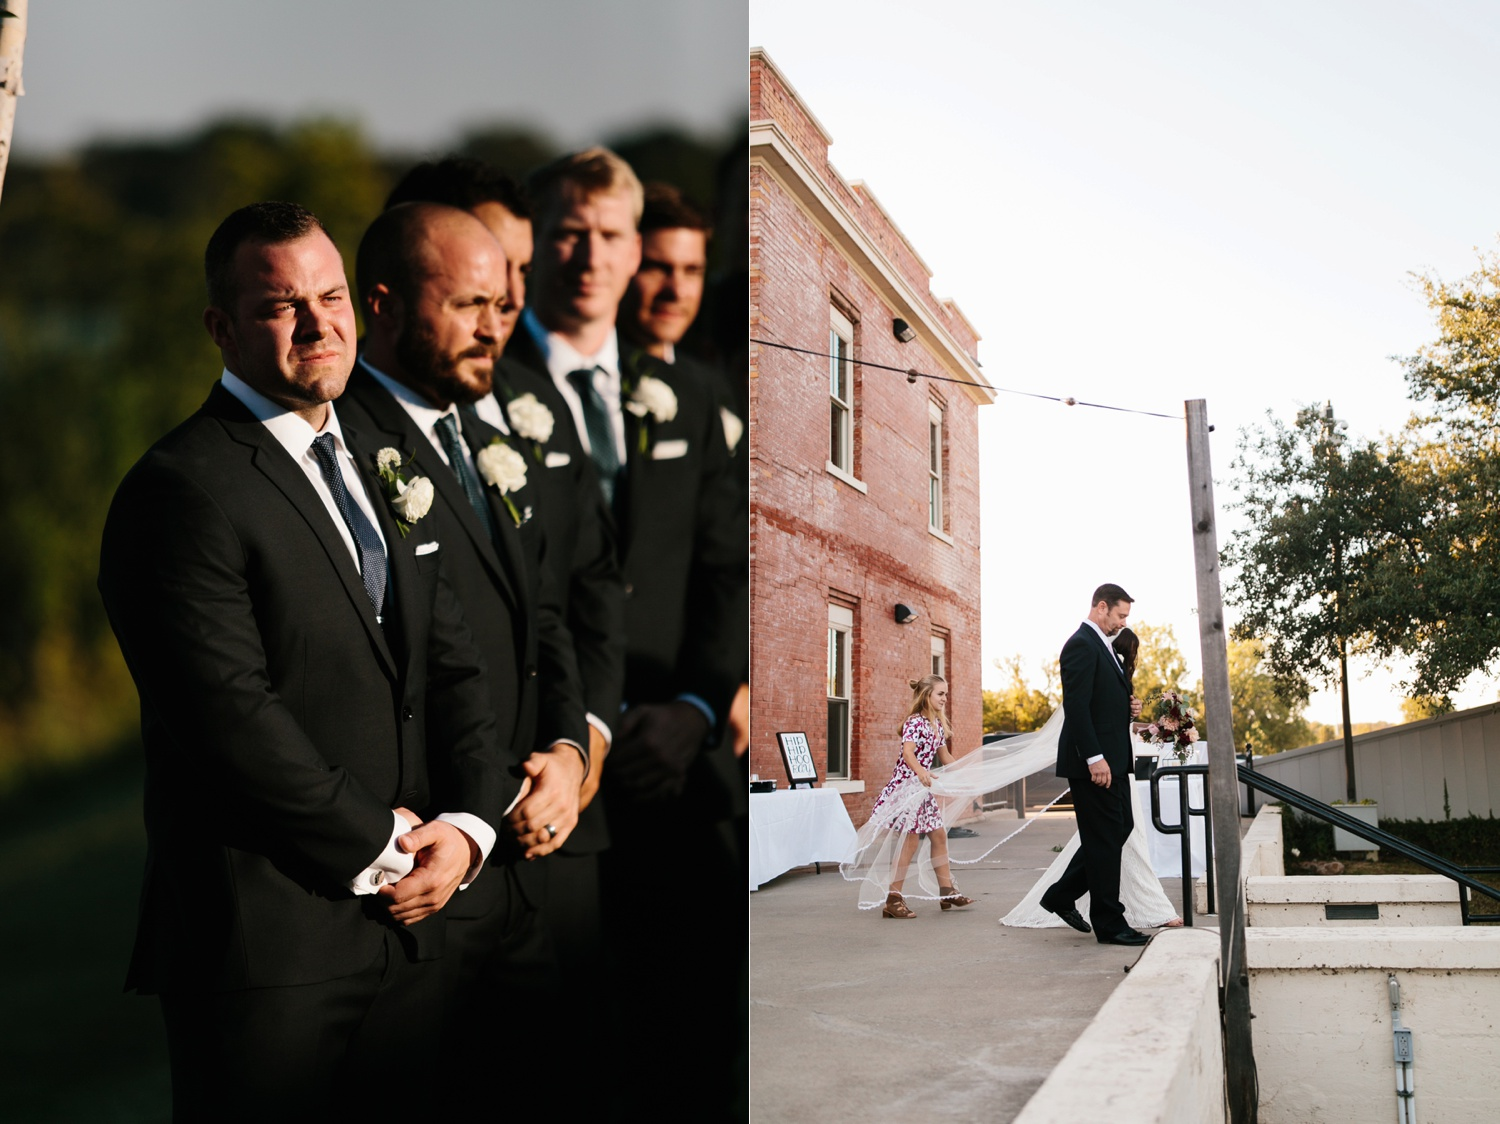 Kadee + Tyler | a raw, emotional wedding at the Filter Building on White Rock Lake in Dallas, TX by North Texas Wedding Photographer, Rachel Meagan Photography 119